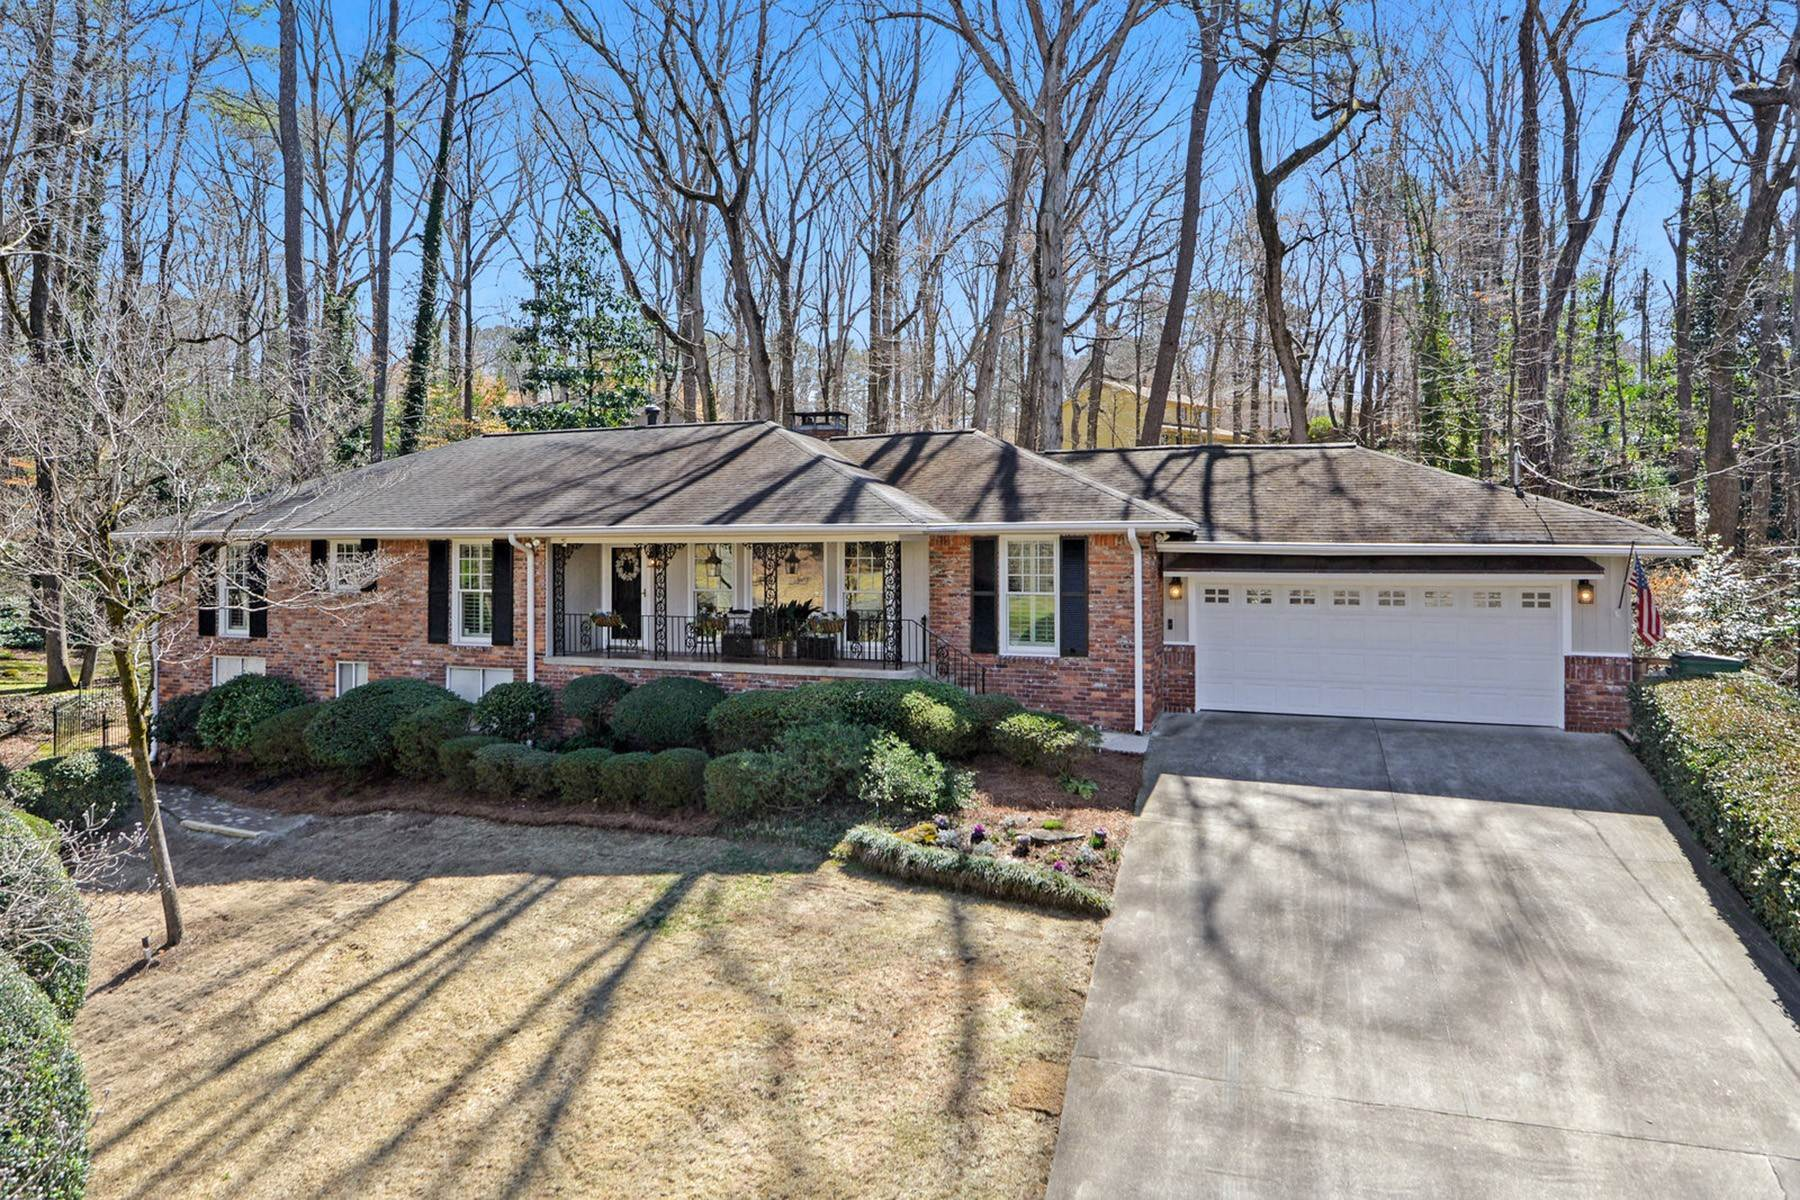 Single Family Homes for Sale at Pristine Brick Ranch in Sought-After Wyndaham Hills 70 Landsdowne Drive Atlanta, Georgia 30328 United States